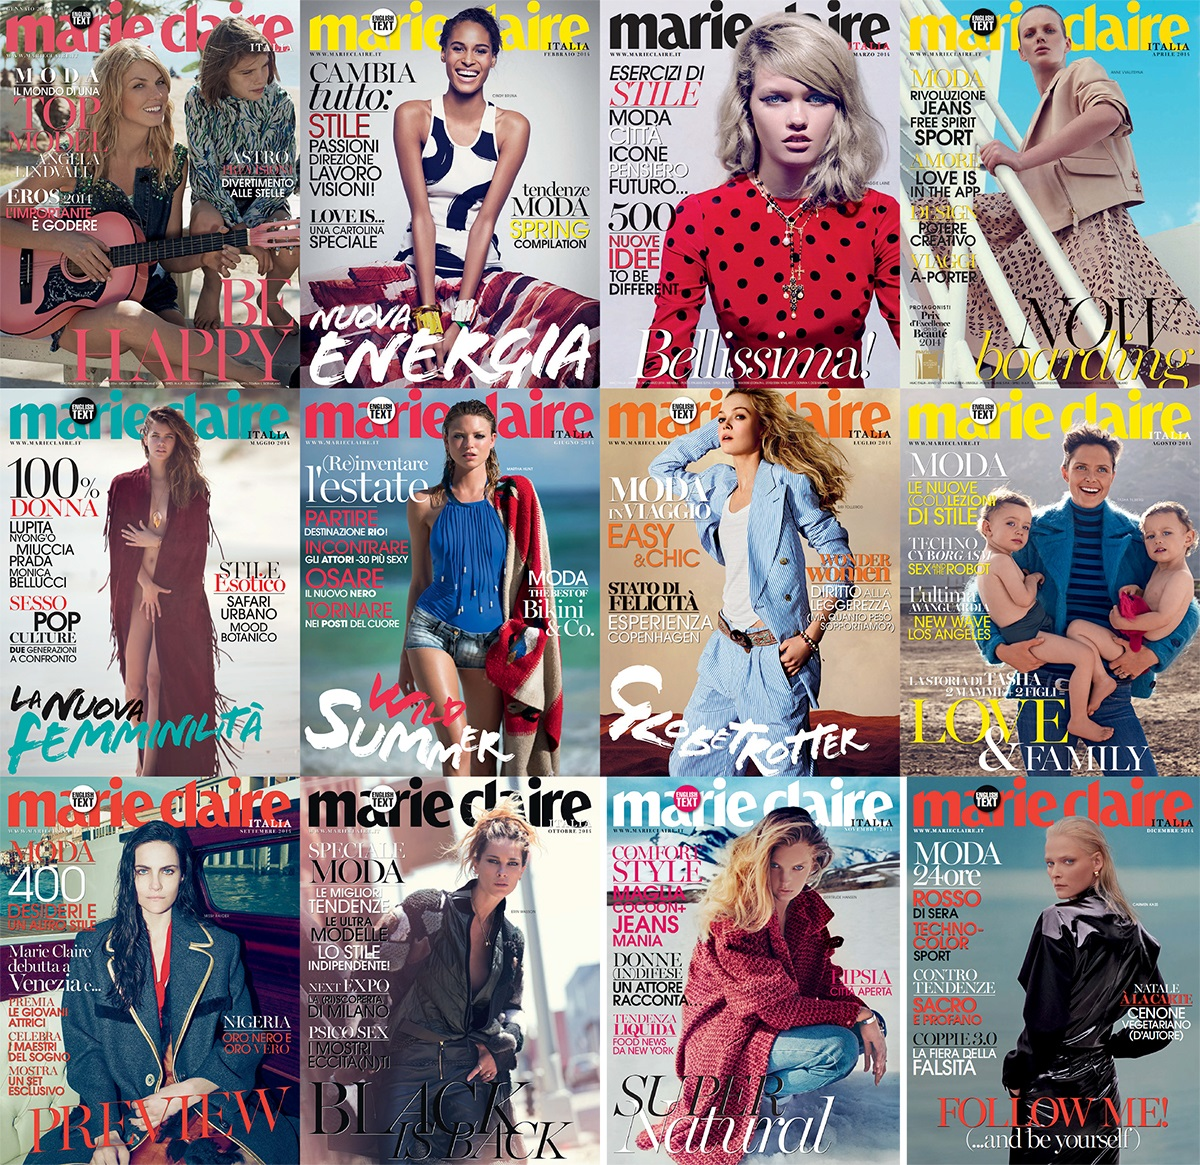 Marie Claire Italia - 2014 Full Year Issues Collection free download